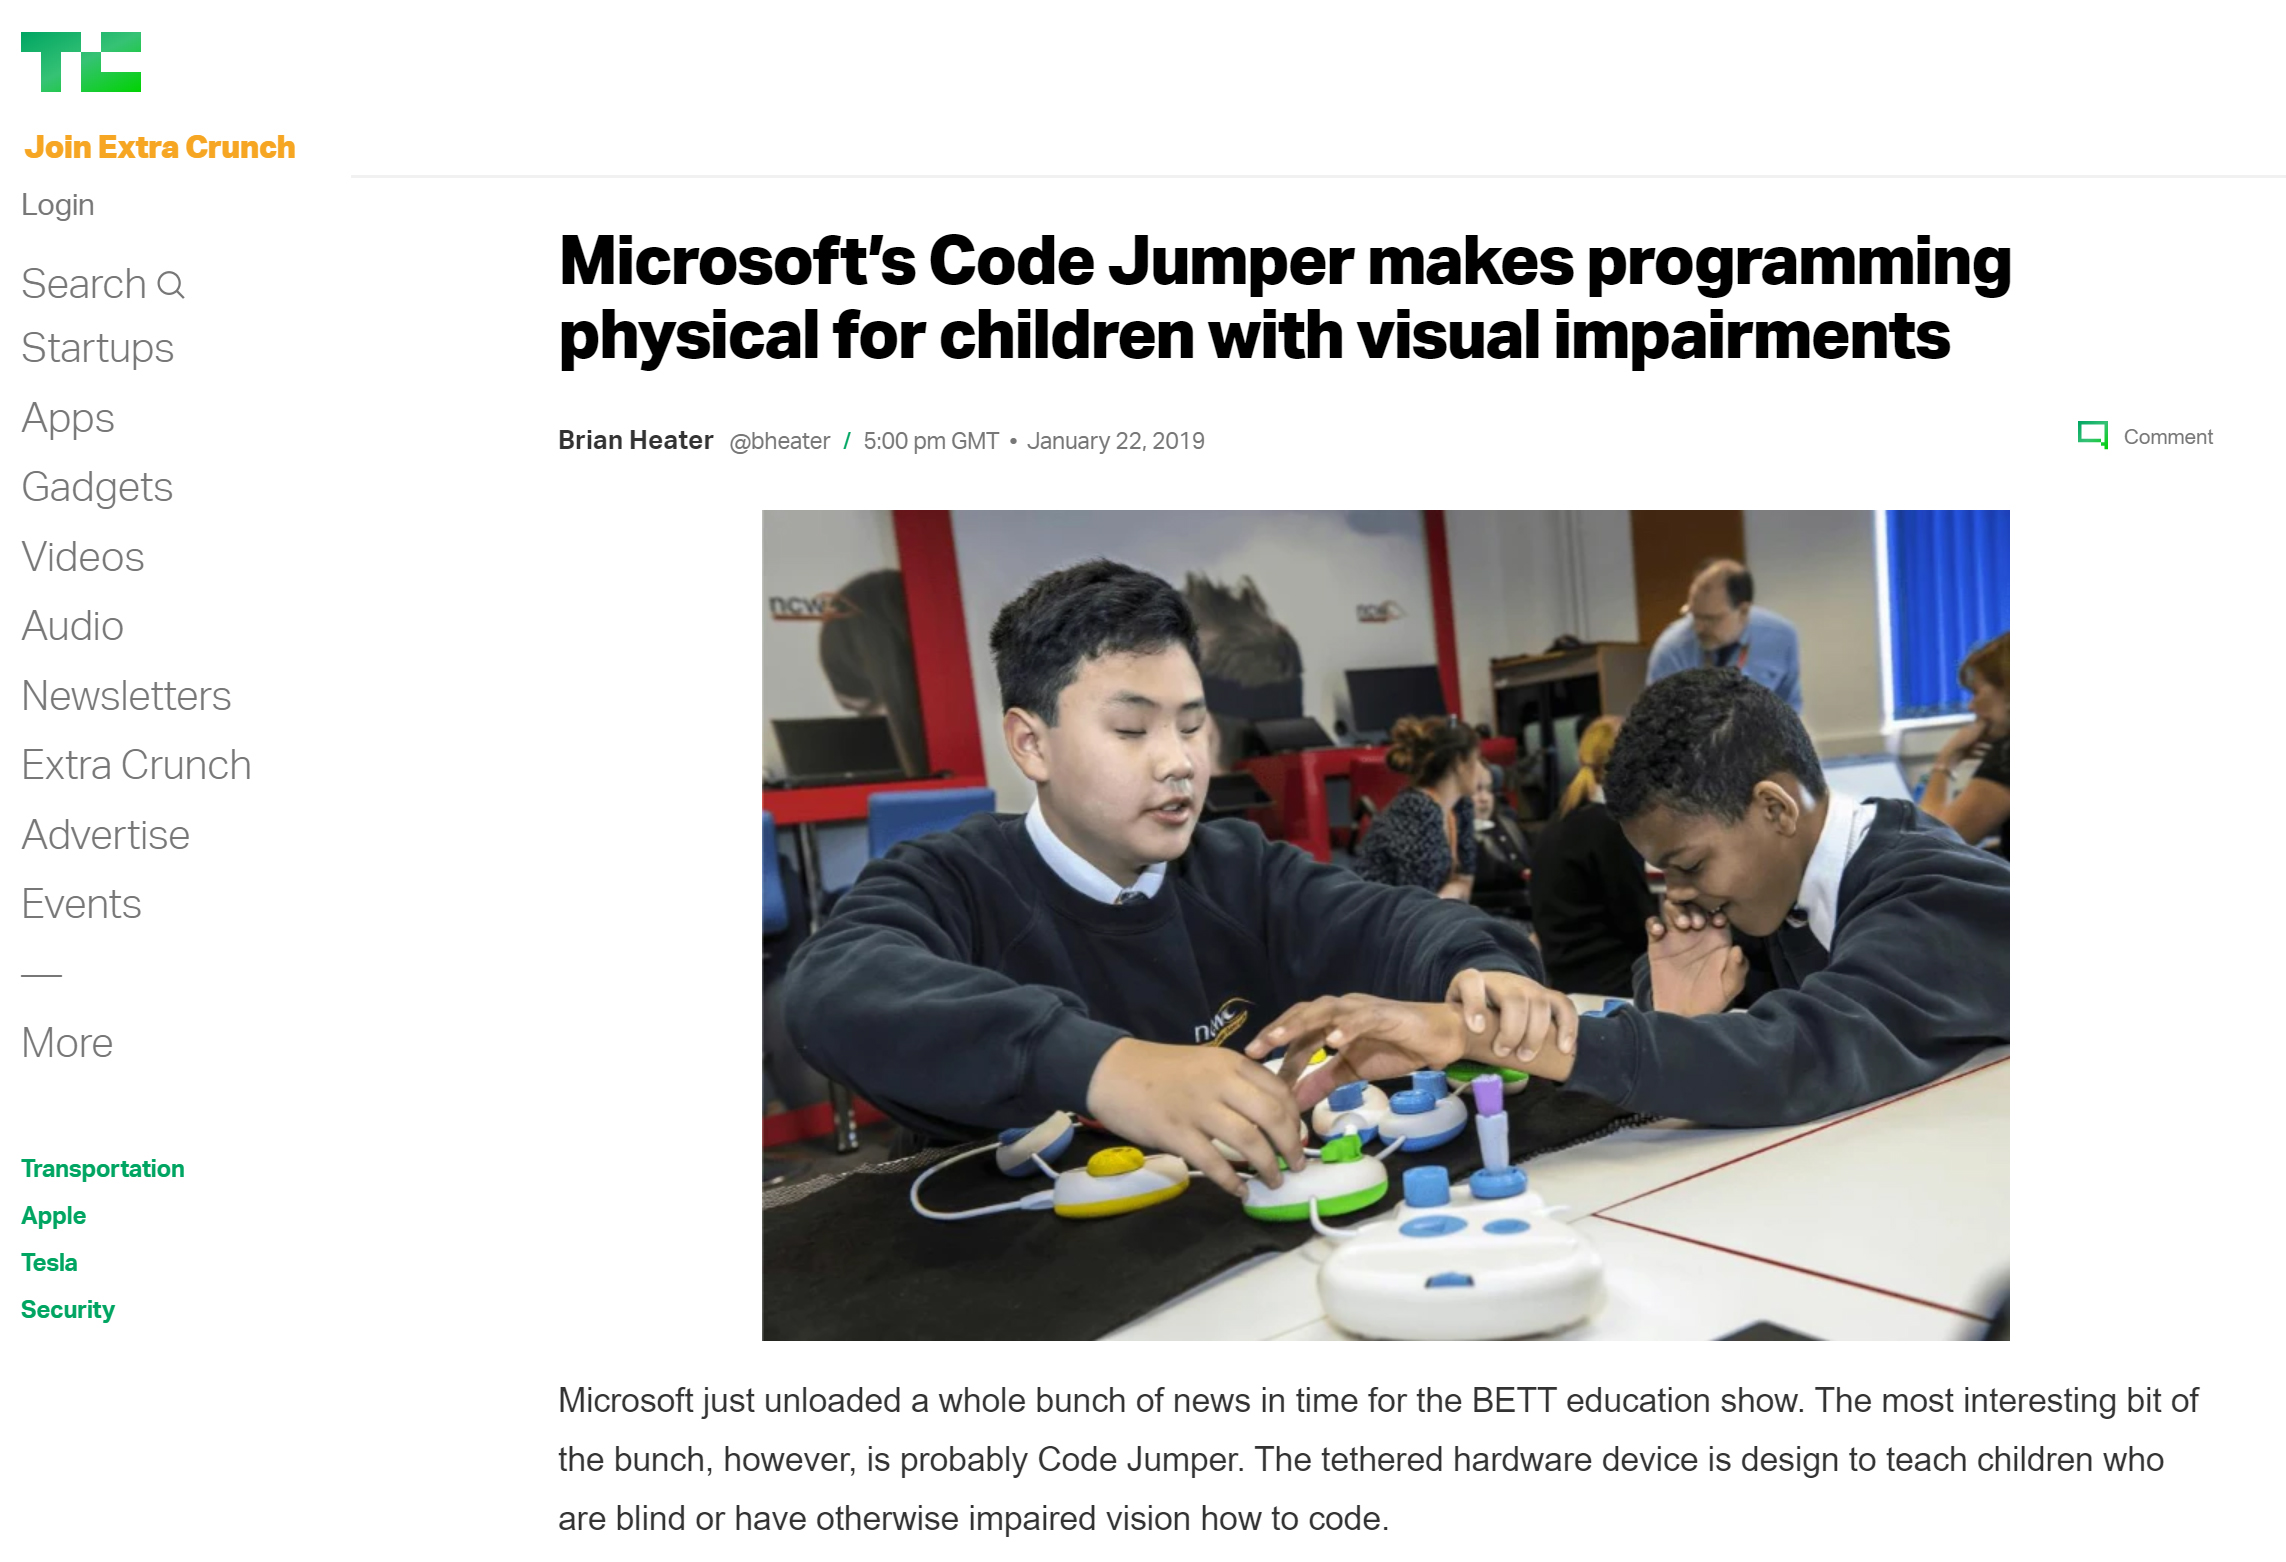 Screenshot of the techcrunch article about Code Jumper